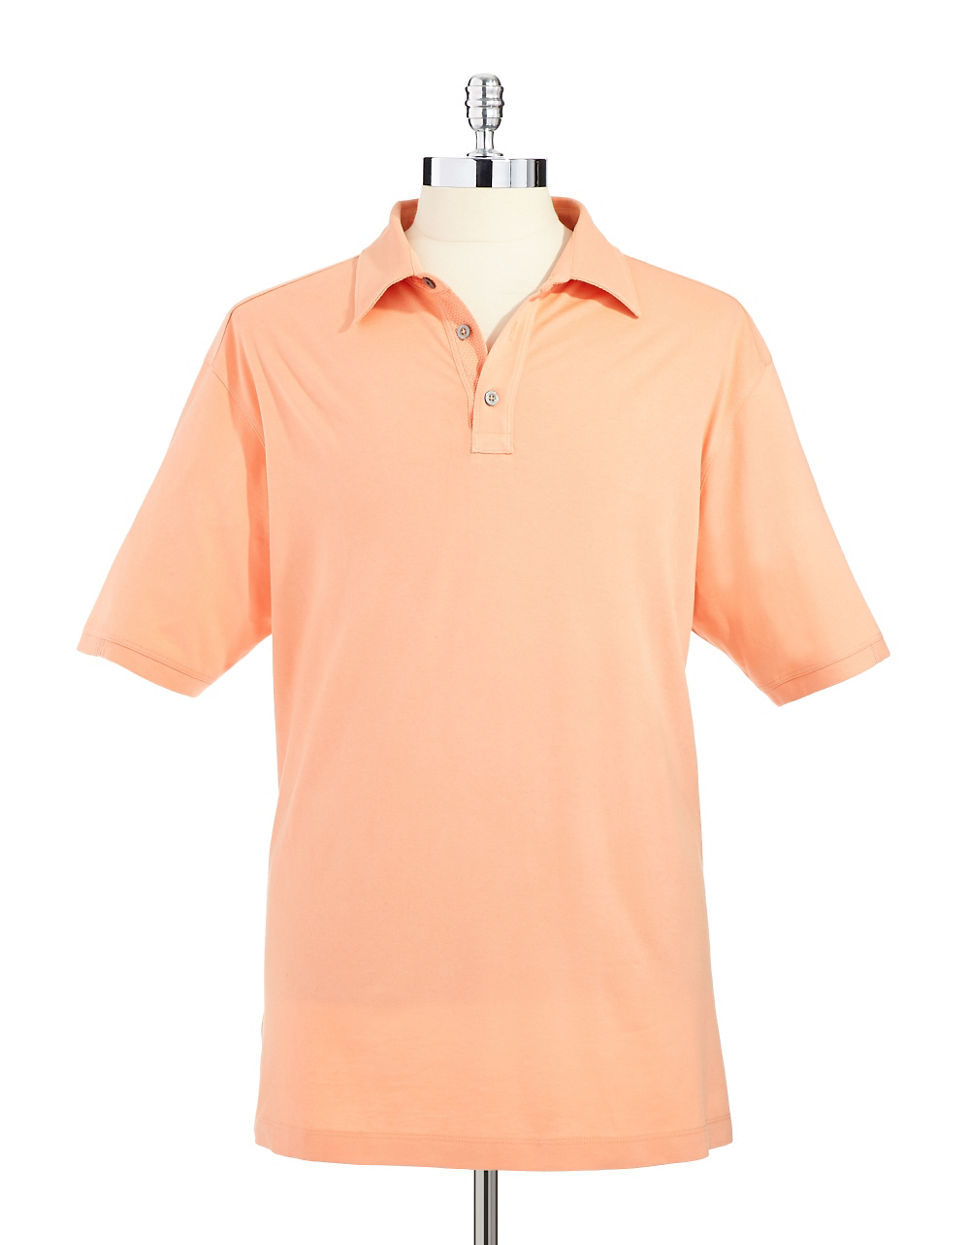 Tommy bahama palm cove spectator polo shirt in orange for for Tommy bahama florida shirt